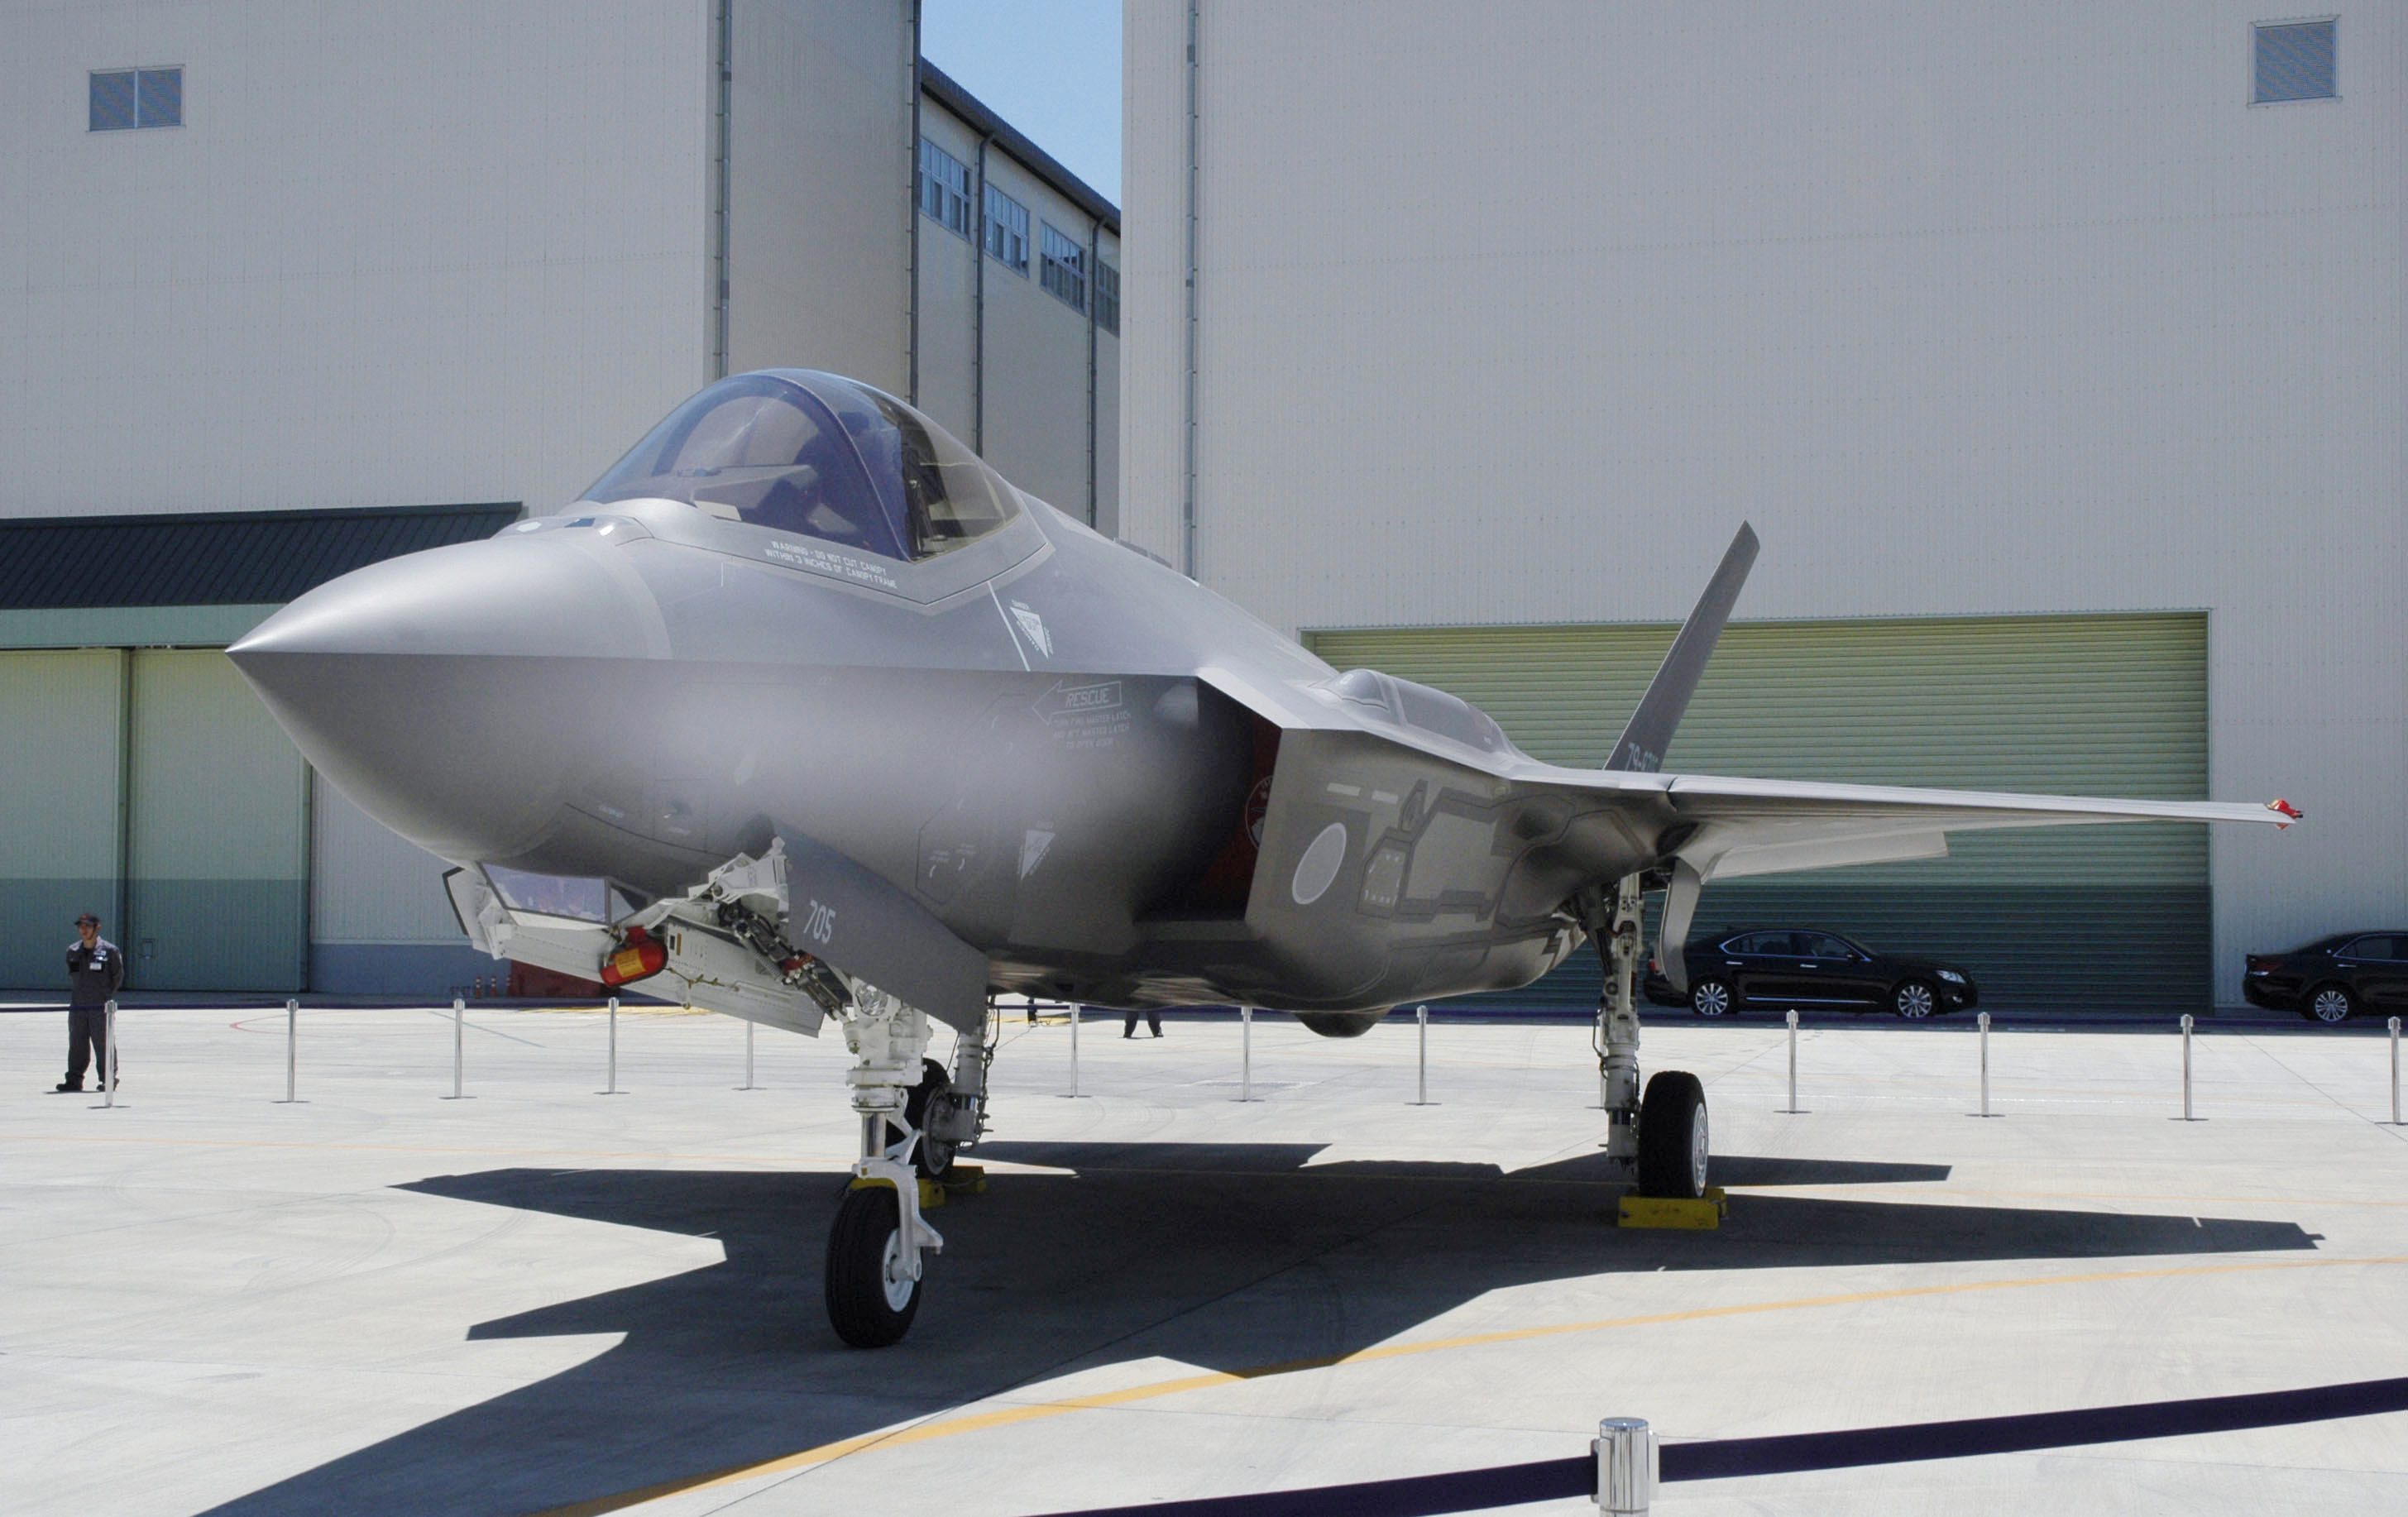 This June, 2017, photo shows Japan Air Self-Defense Force's F-35A stealth jet at a factory of Mitsubishi Heavy Industries, in Toyoyama, central Japan. A search was underway for the Japanese fighter jet Tuesday, April 9, 2019, after it disappeared from radar during a flight exercise in northern Japan, defense officials said. The F-35A stealth jet, seen in the photo,  went missing while flying off the eastern coast of Aomori, the Air Self-Defense Force said.(Kyodo News via AP)